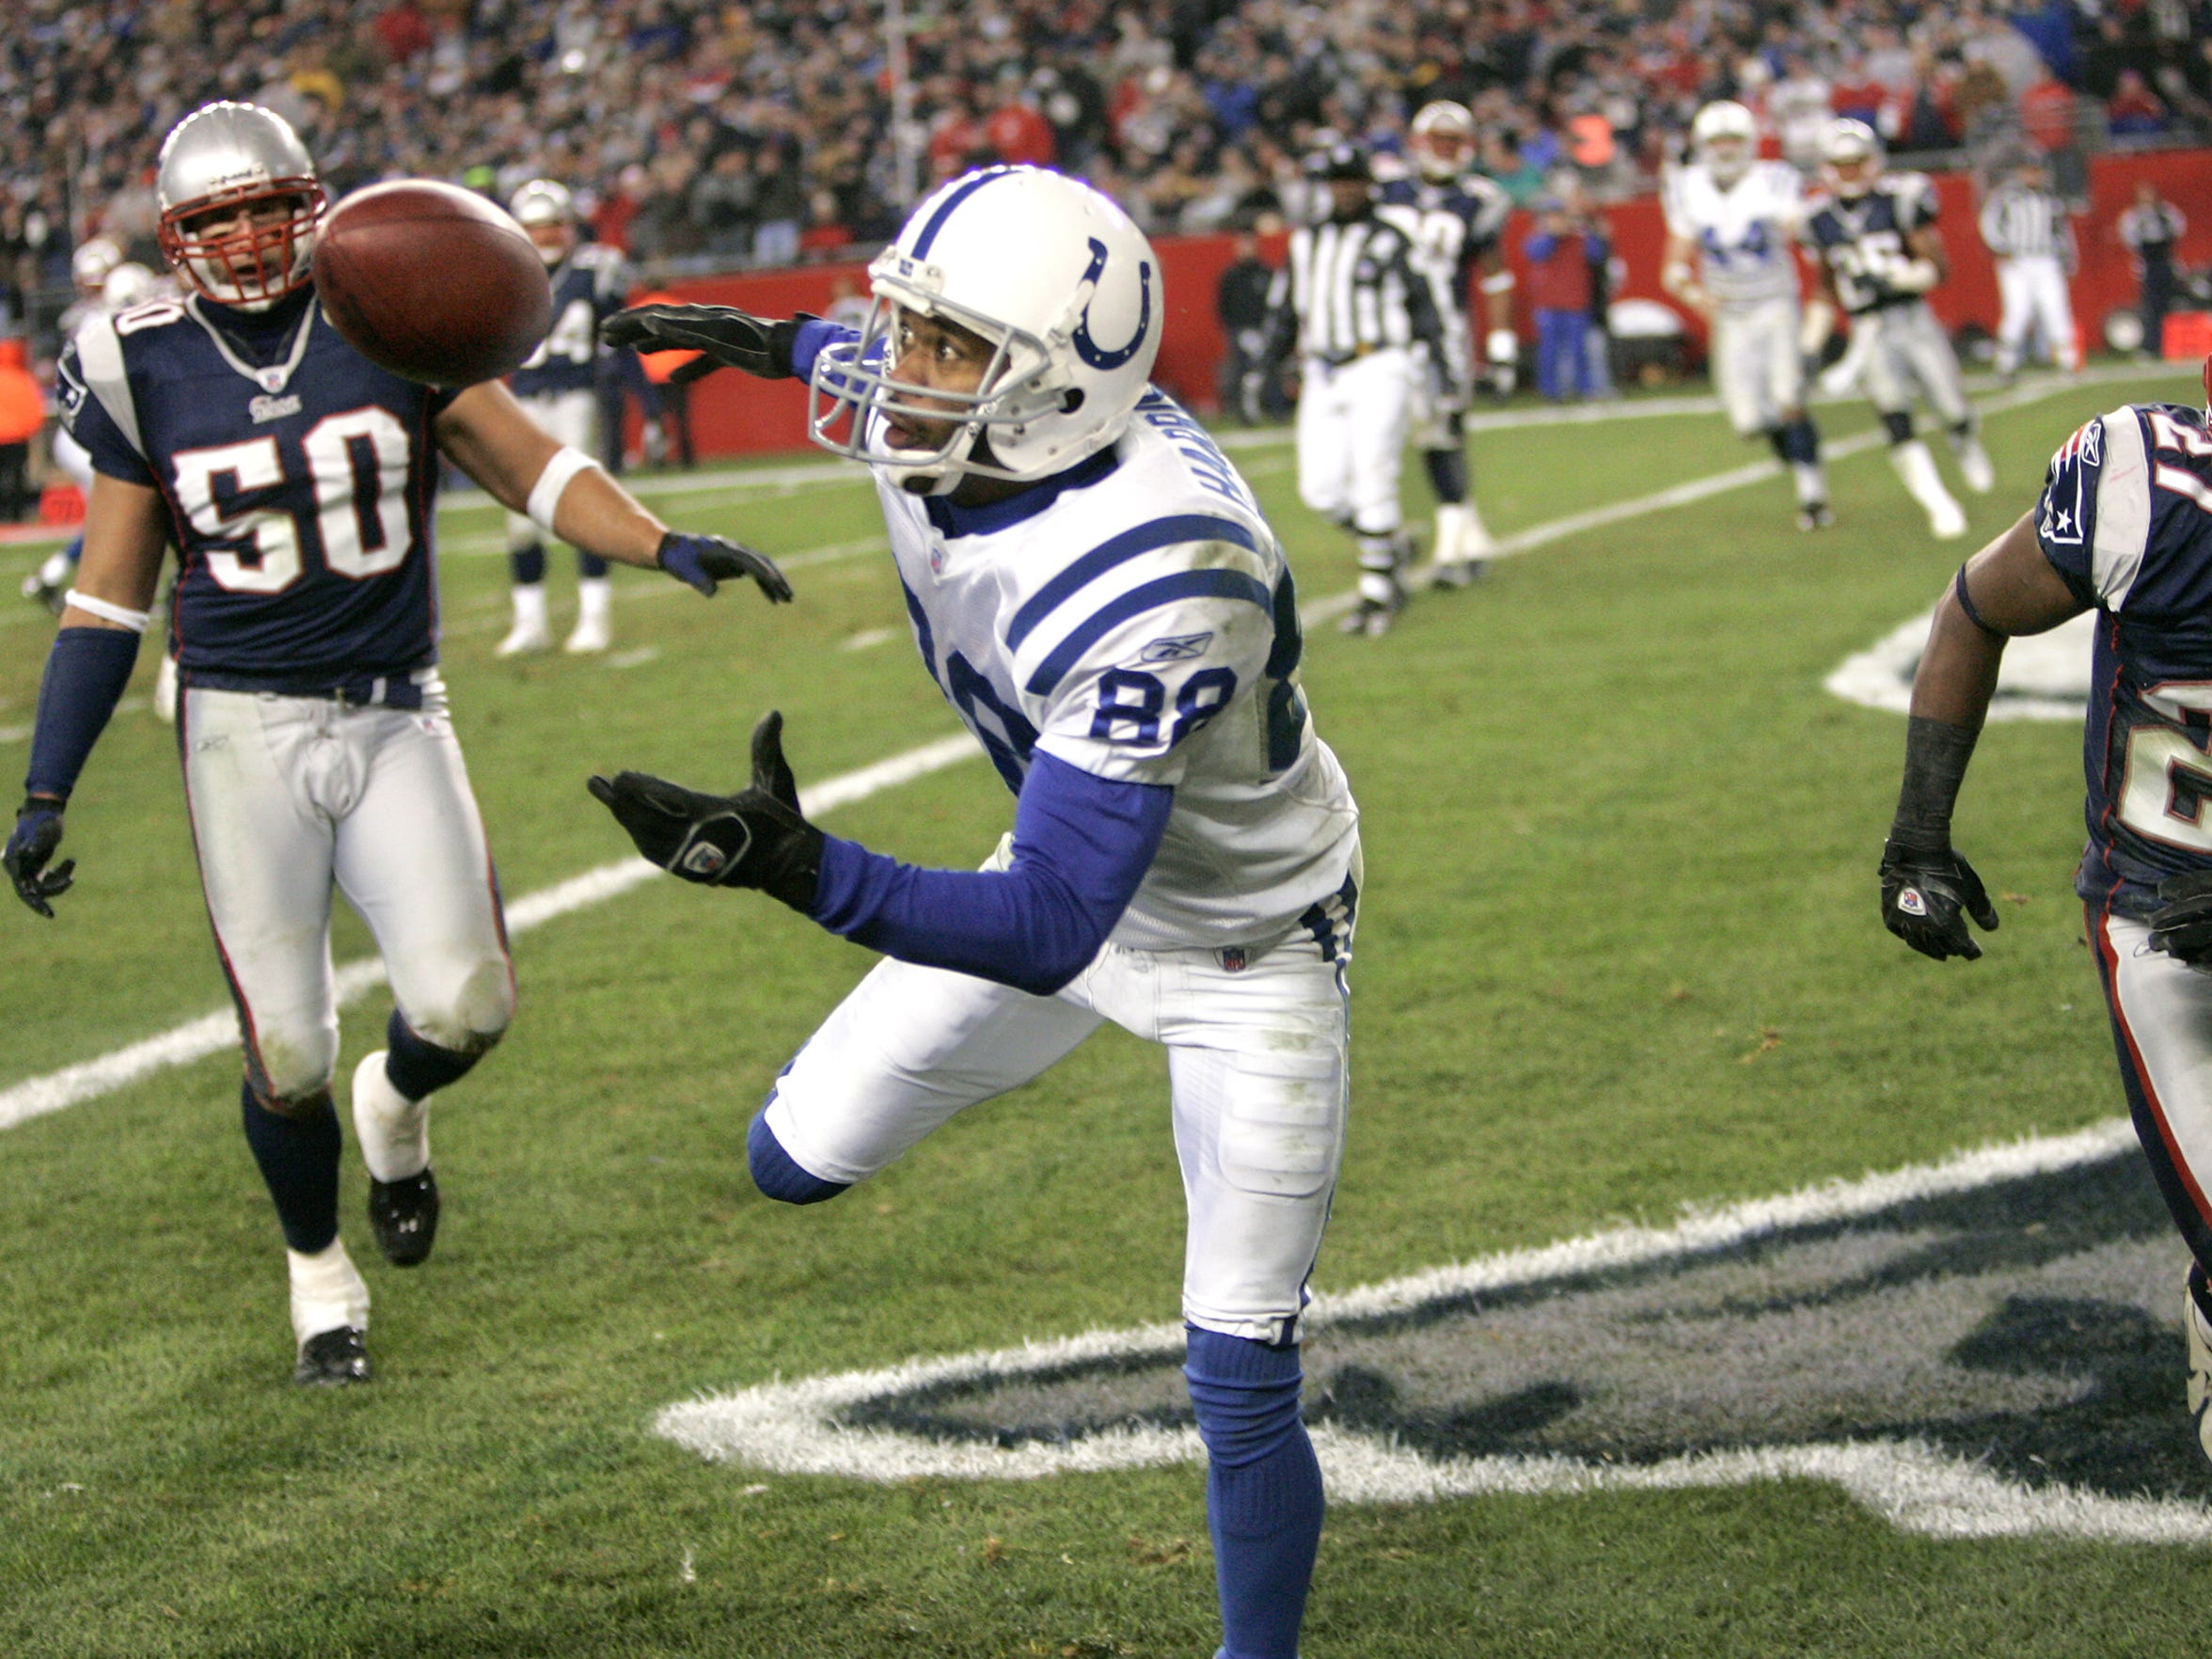 Harrison keeps his eyes on the football before making a spectacular touchdown catch vs. New England in 2006.